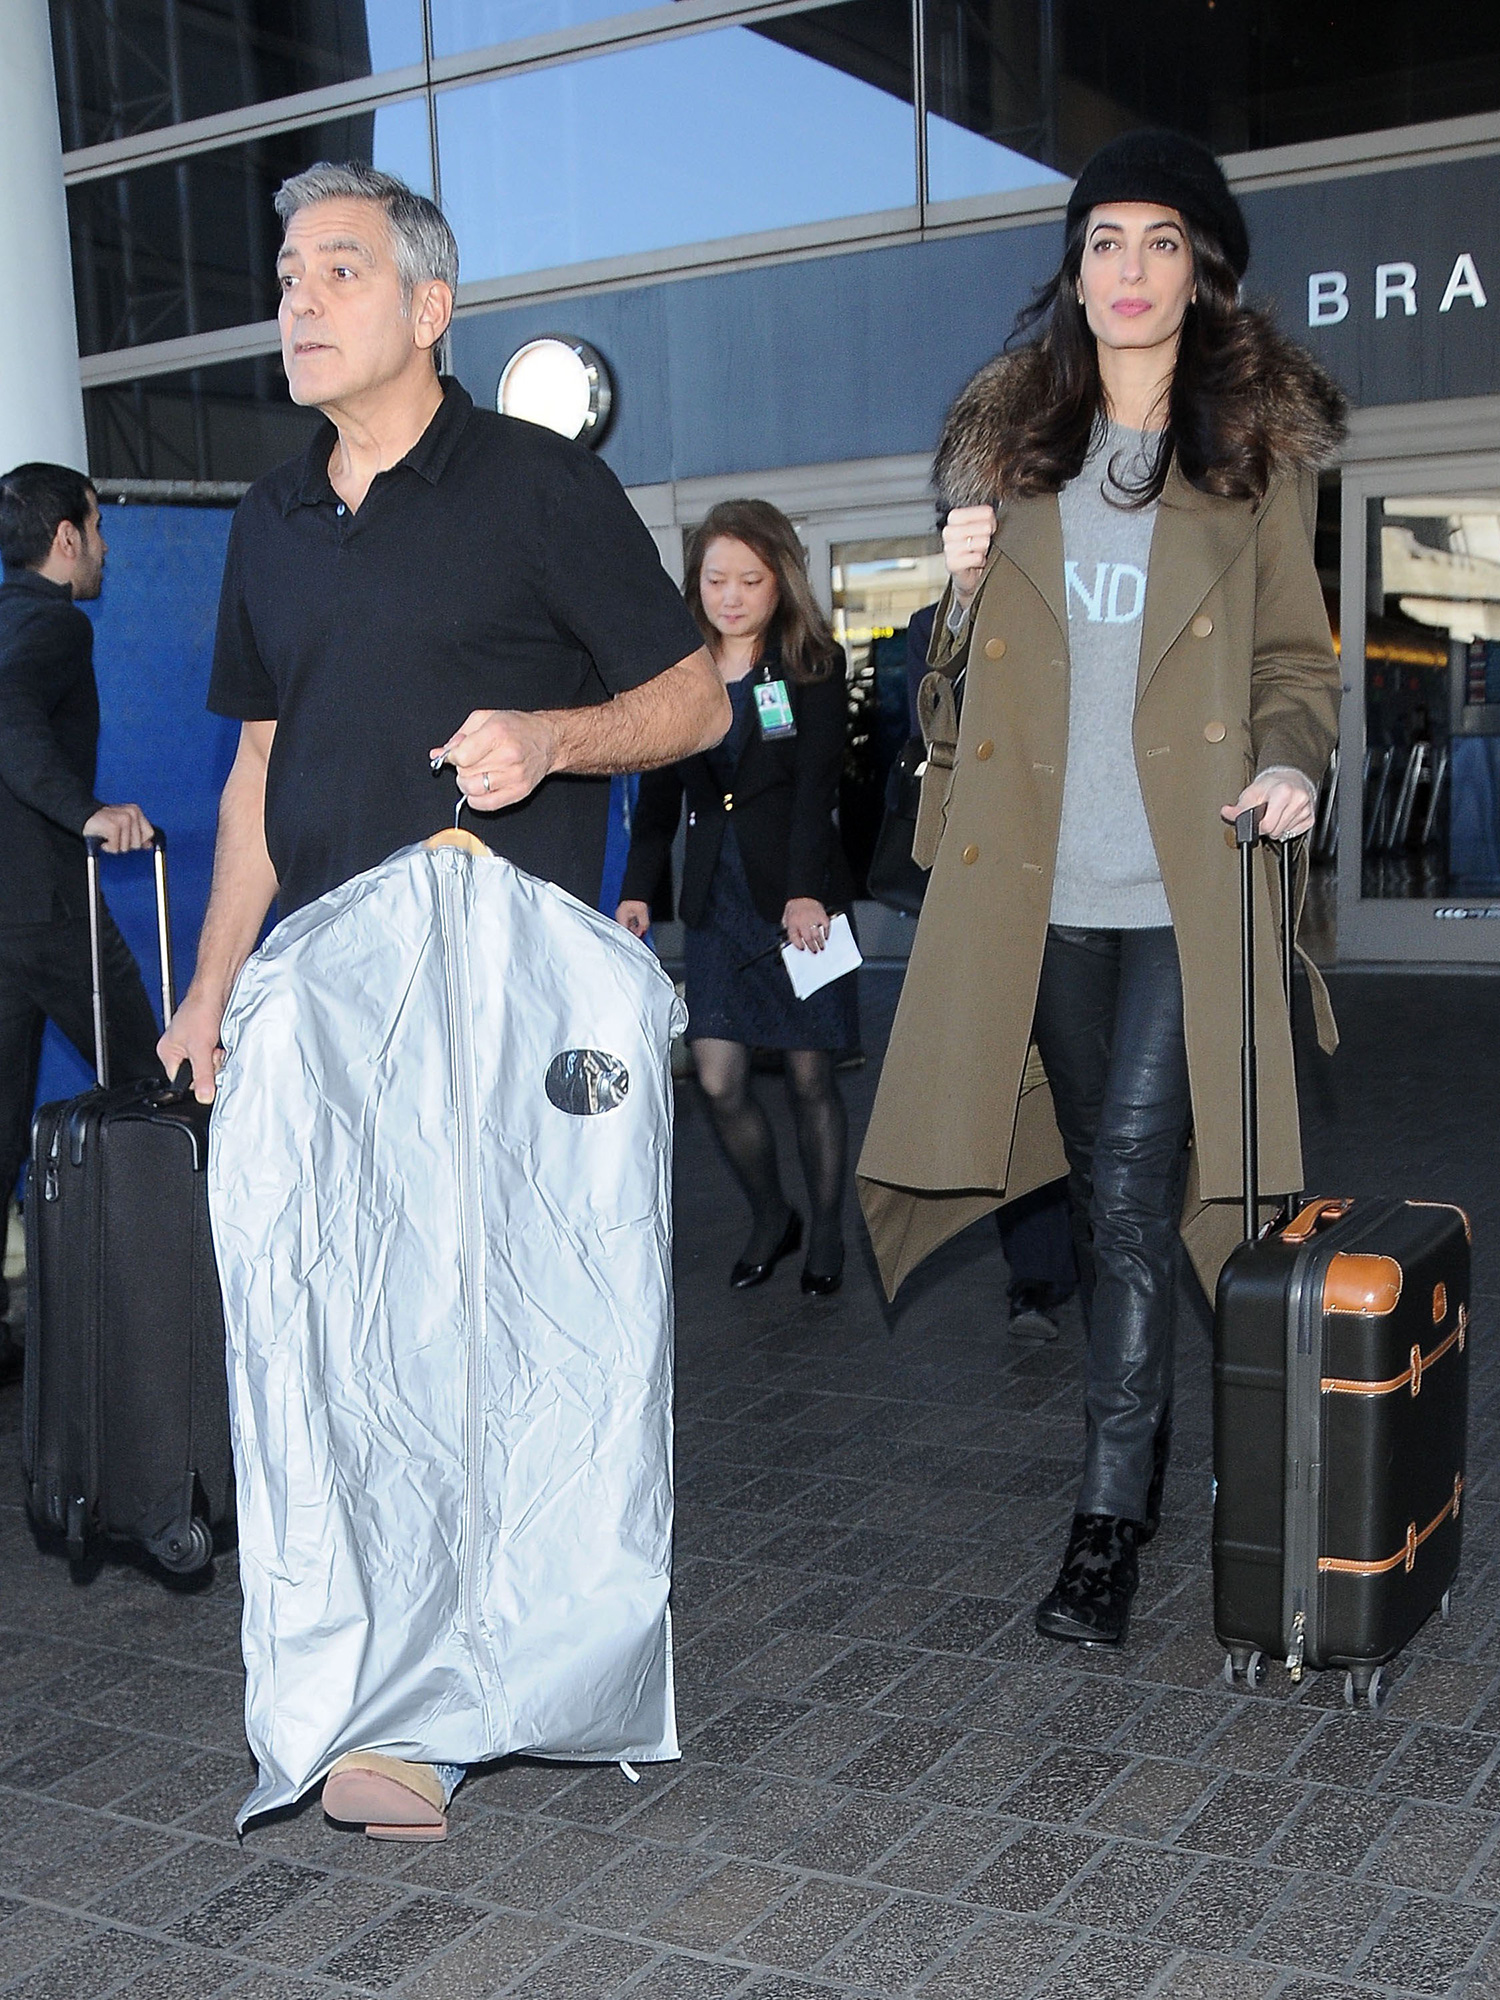 52296140 Actor George Clooney and his pregnant wife Amal Alamuddin are seen arriving on a flight at LAX airport in Los Angeles, California on January 27, 2017. The couple are expecting twins and have been busy preparing a million dollar nursery at their home. FameFlynet, Inc - Beverly Hills, CA, USA - +1 (310) 505-9876